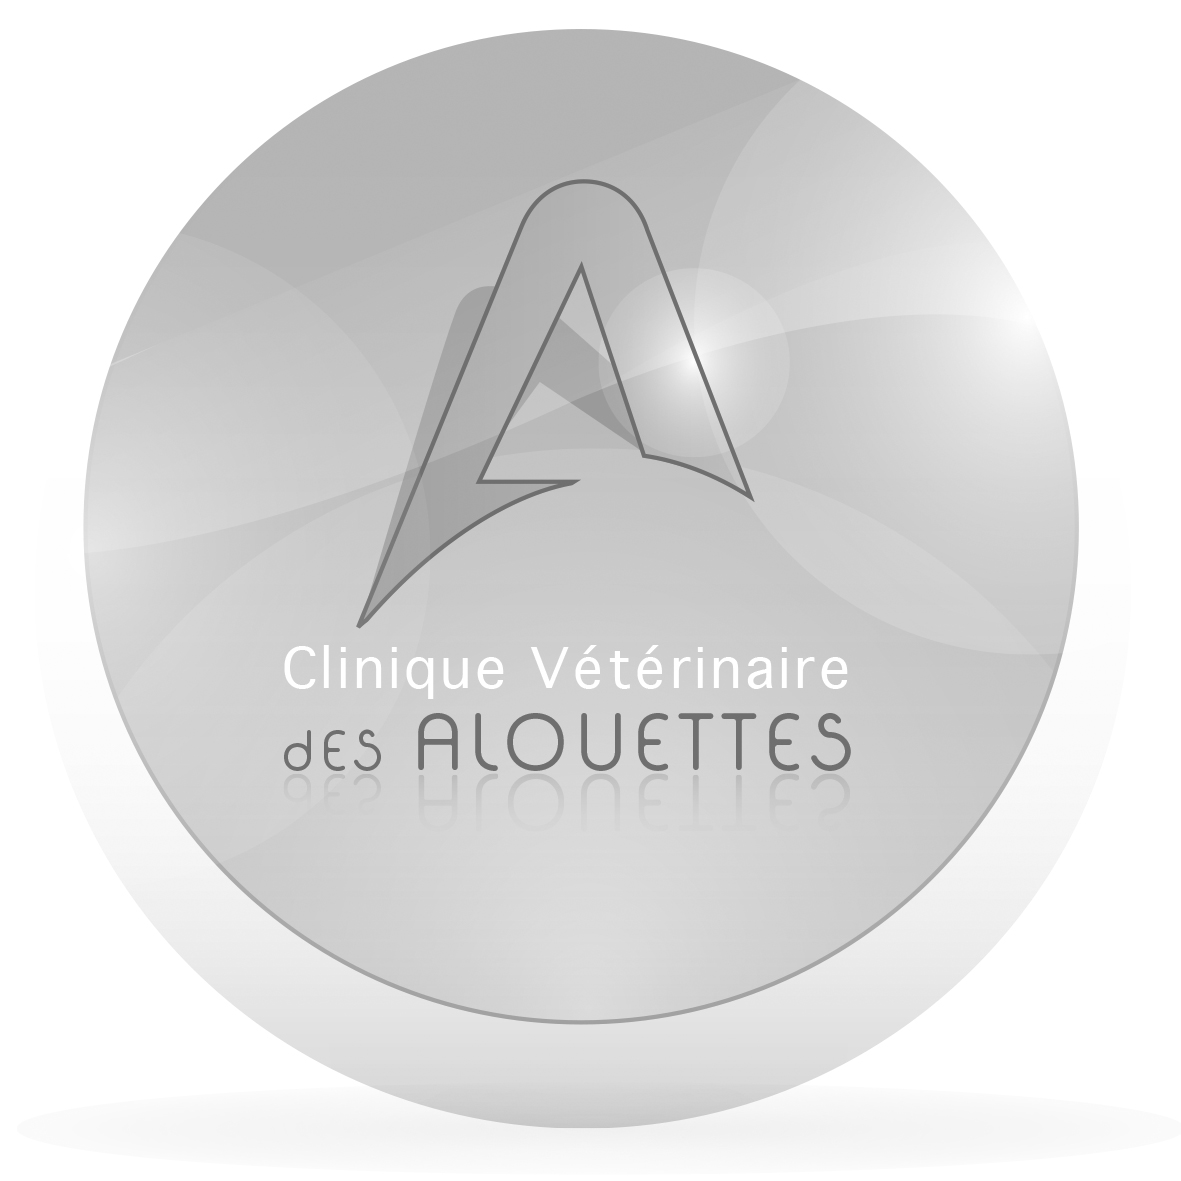 LOGO-ALOUETTES-Glossy-cmjn.png